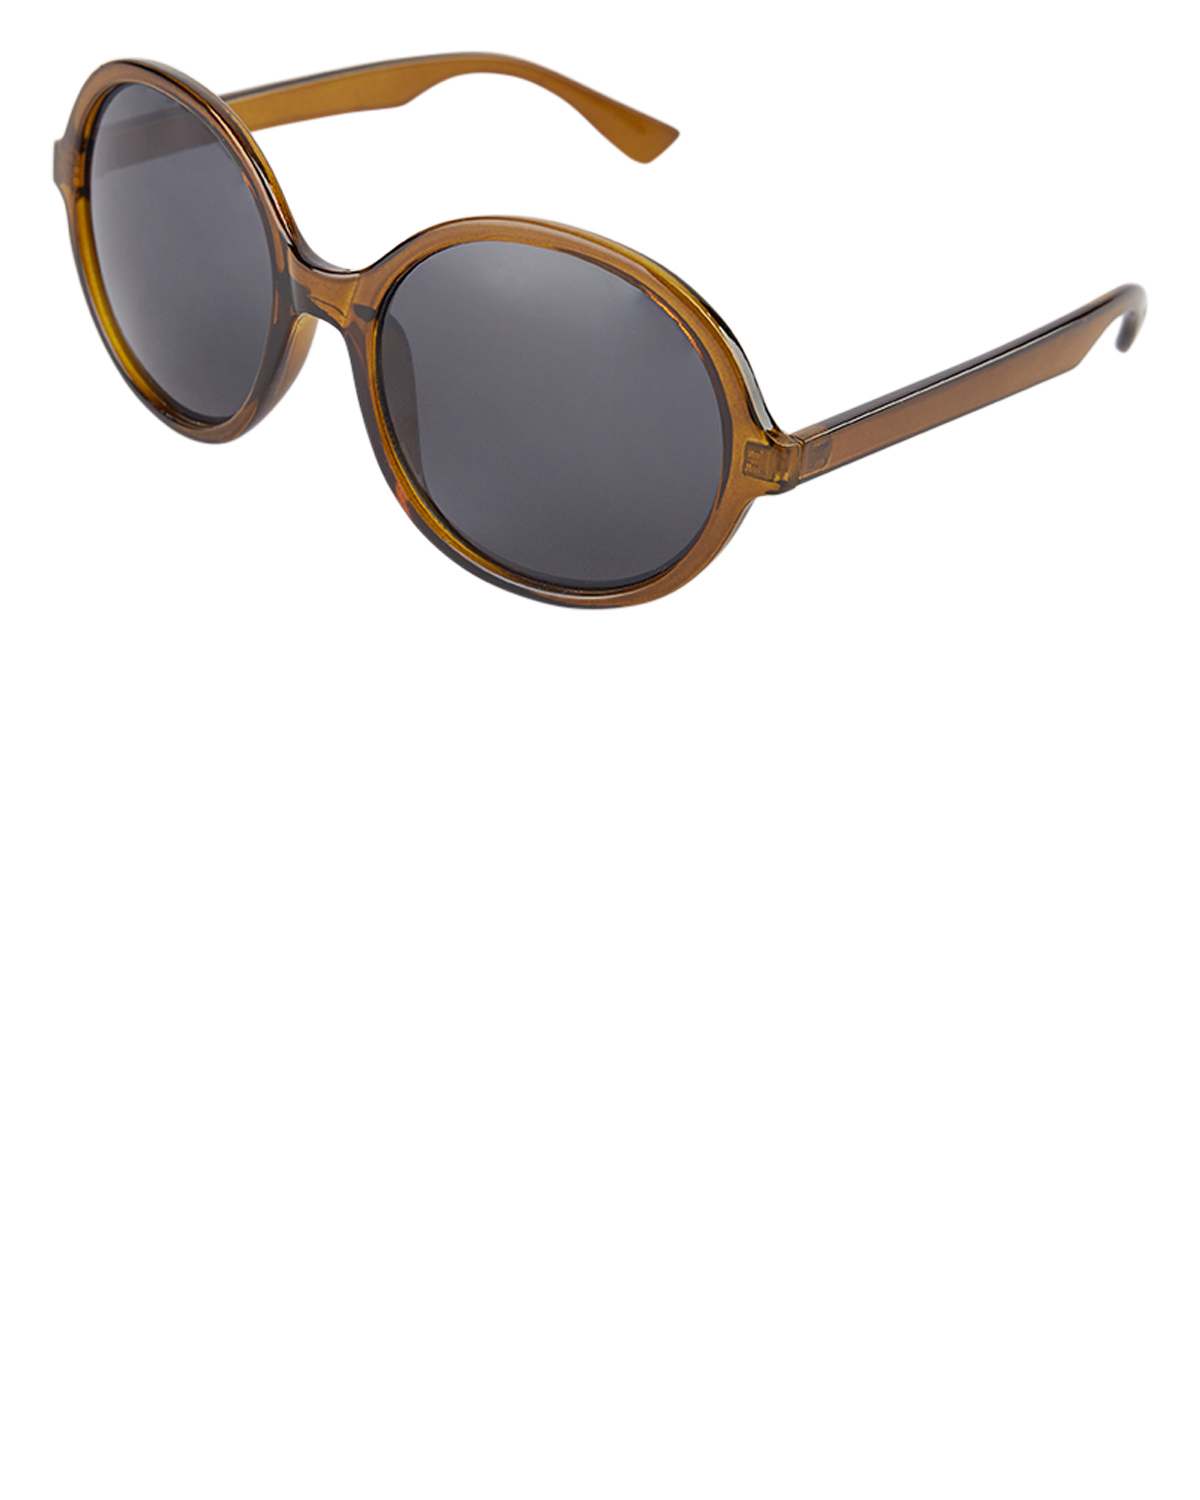 Nümph Sunio sunglasses